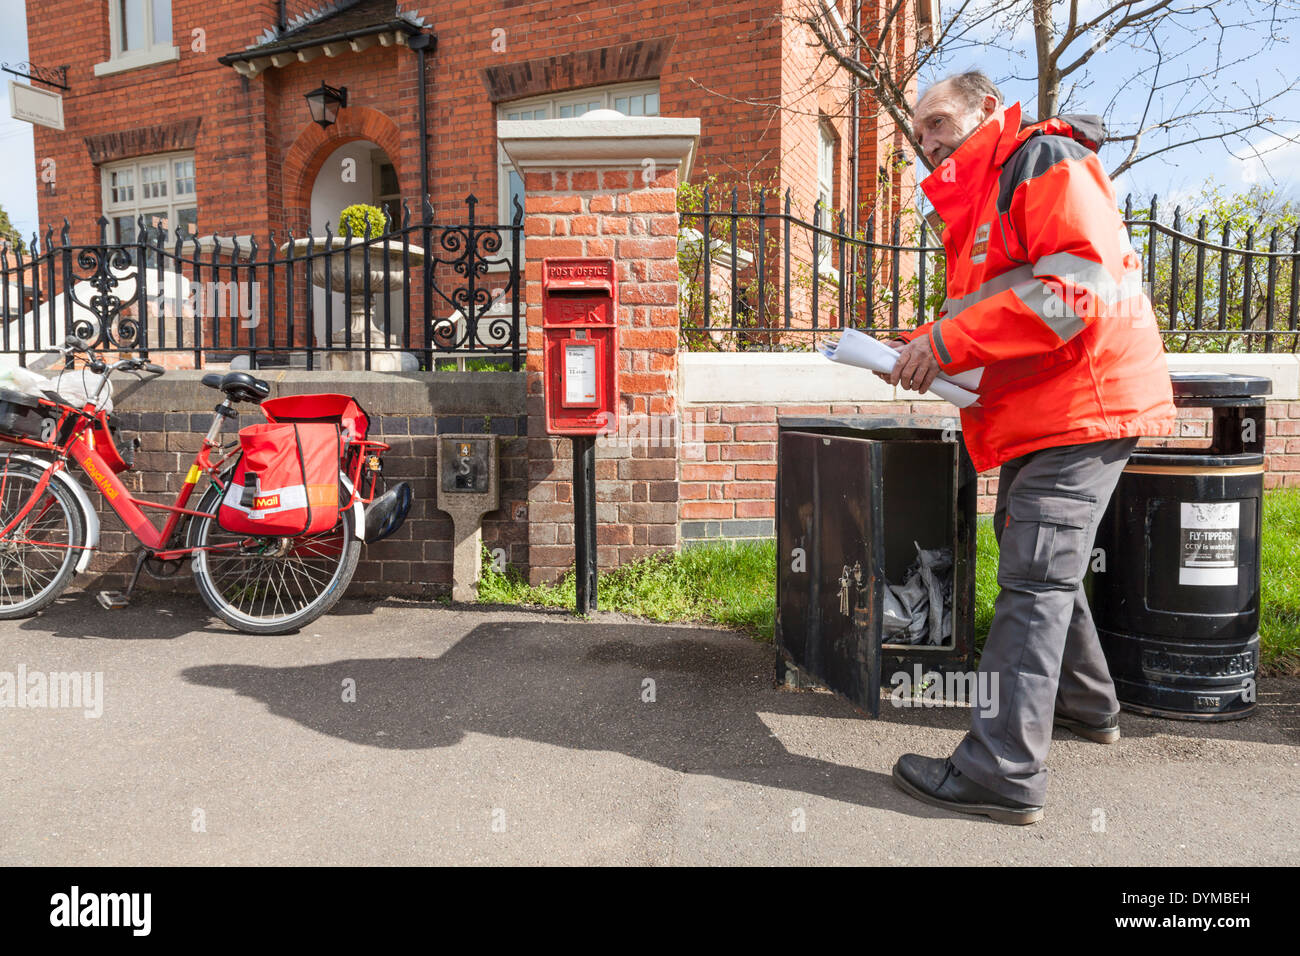 Royal Mail postman collecting post from a box prior to delivering. Nottinghamshire, England, UK Stock Photo